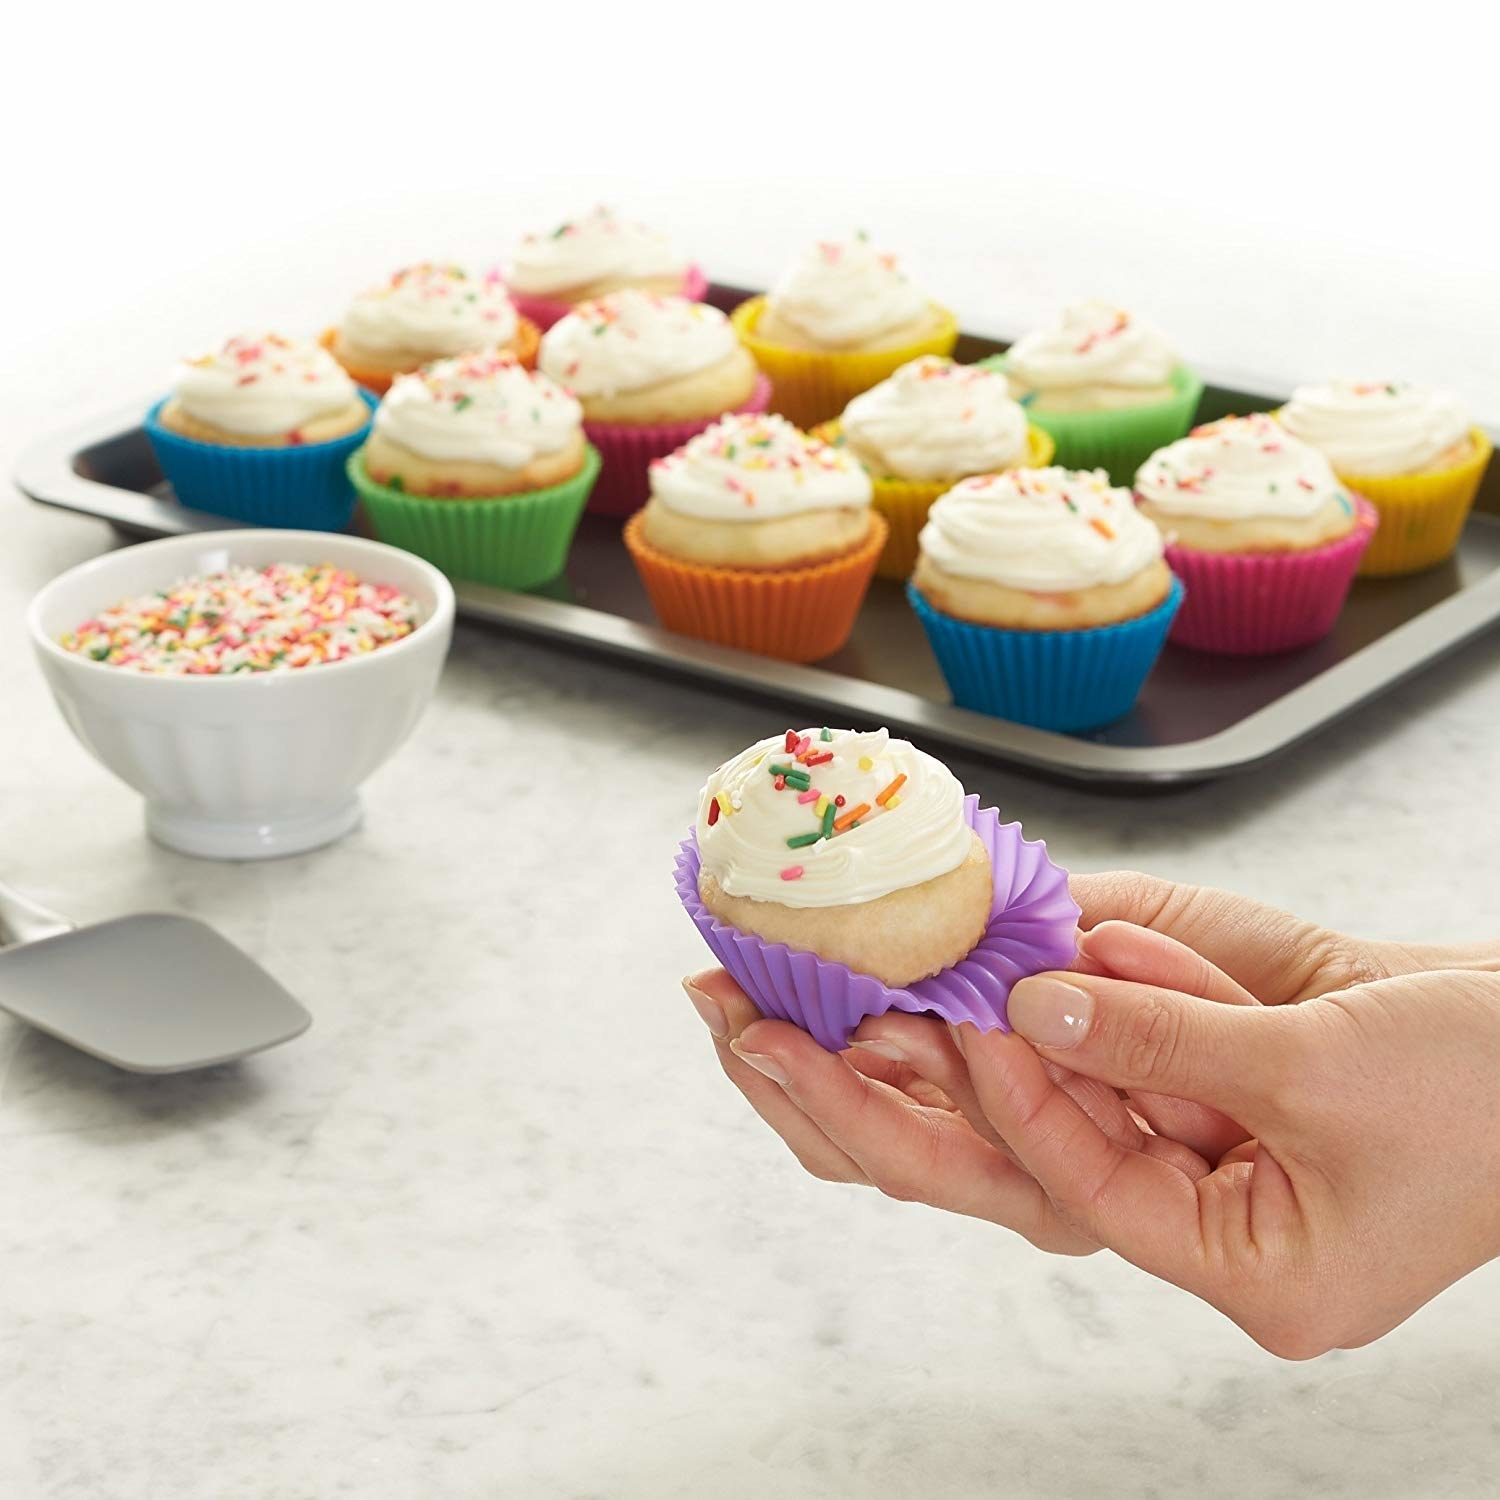 model peels holder off cupcake to show that no crumbs are sticking